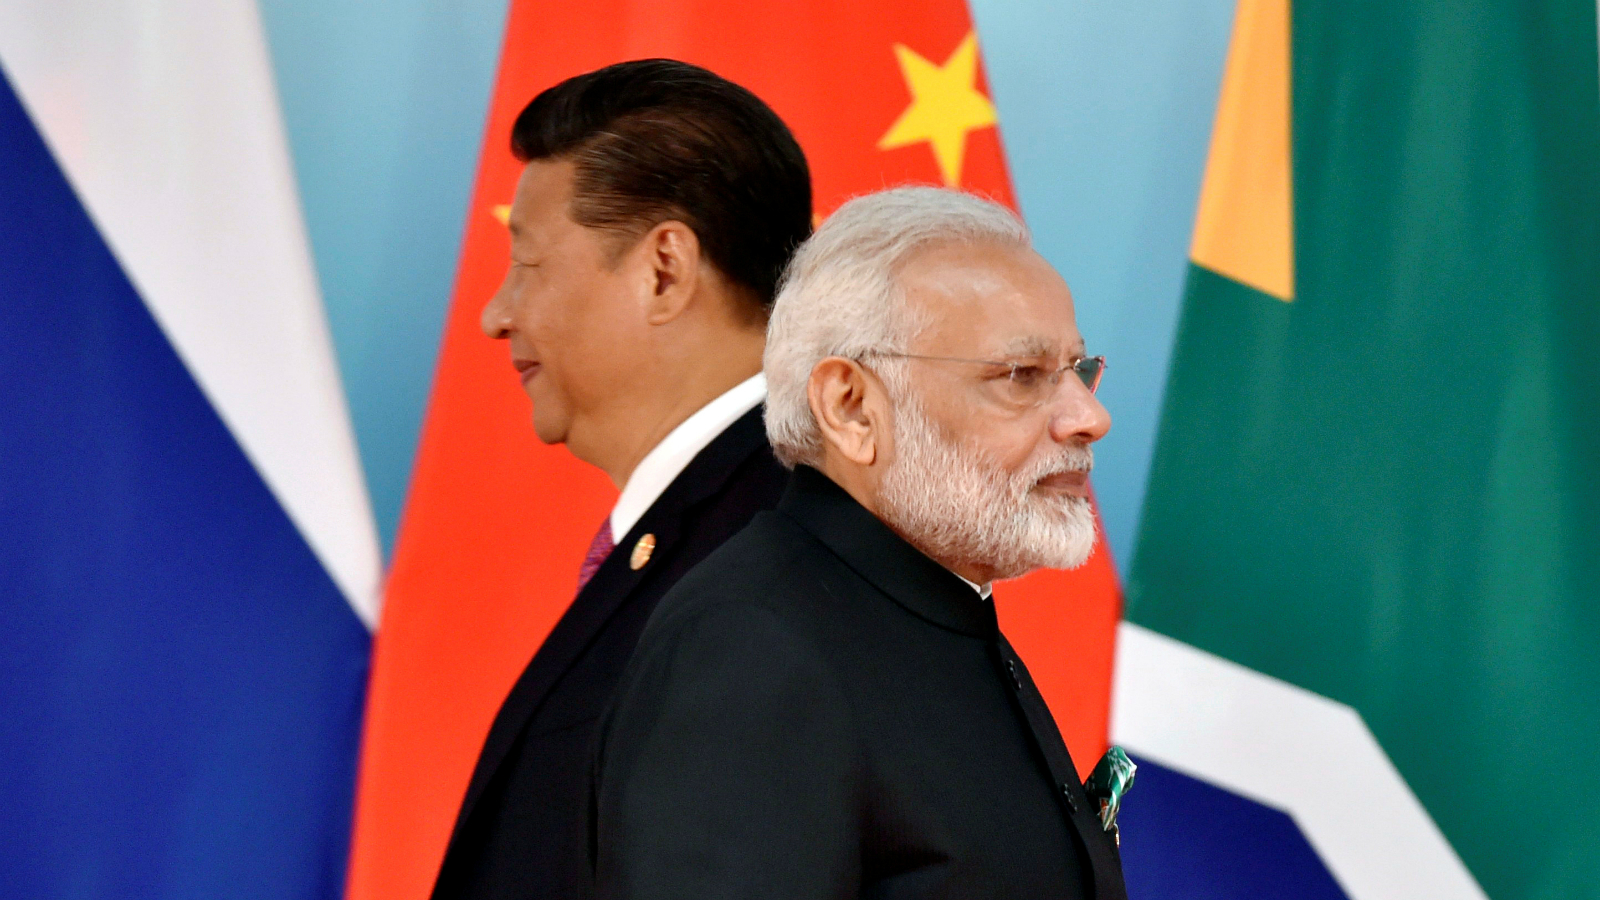 Chinese President Xi Jinping (L) and Indian Prime Minister Narendra Modi attend the group photo session during the BRICS Summit at the Xiamen International Conference and Exhibition Center in Xiamen, Fujian Province, China September 4, 2017. REUTERS/Kenzaburo Fukuhara/Pool/File Photo